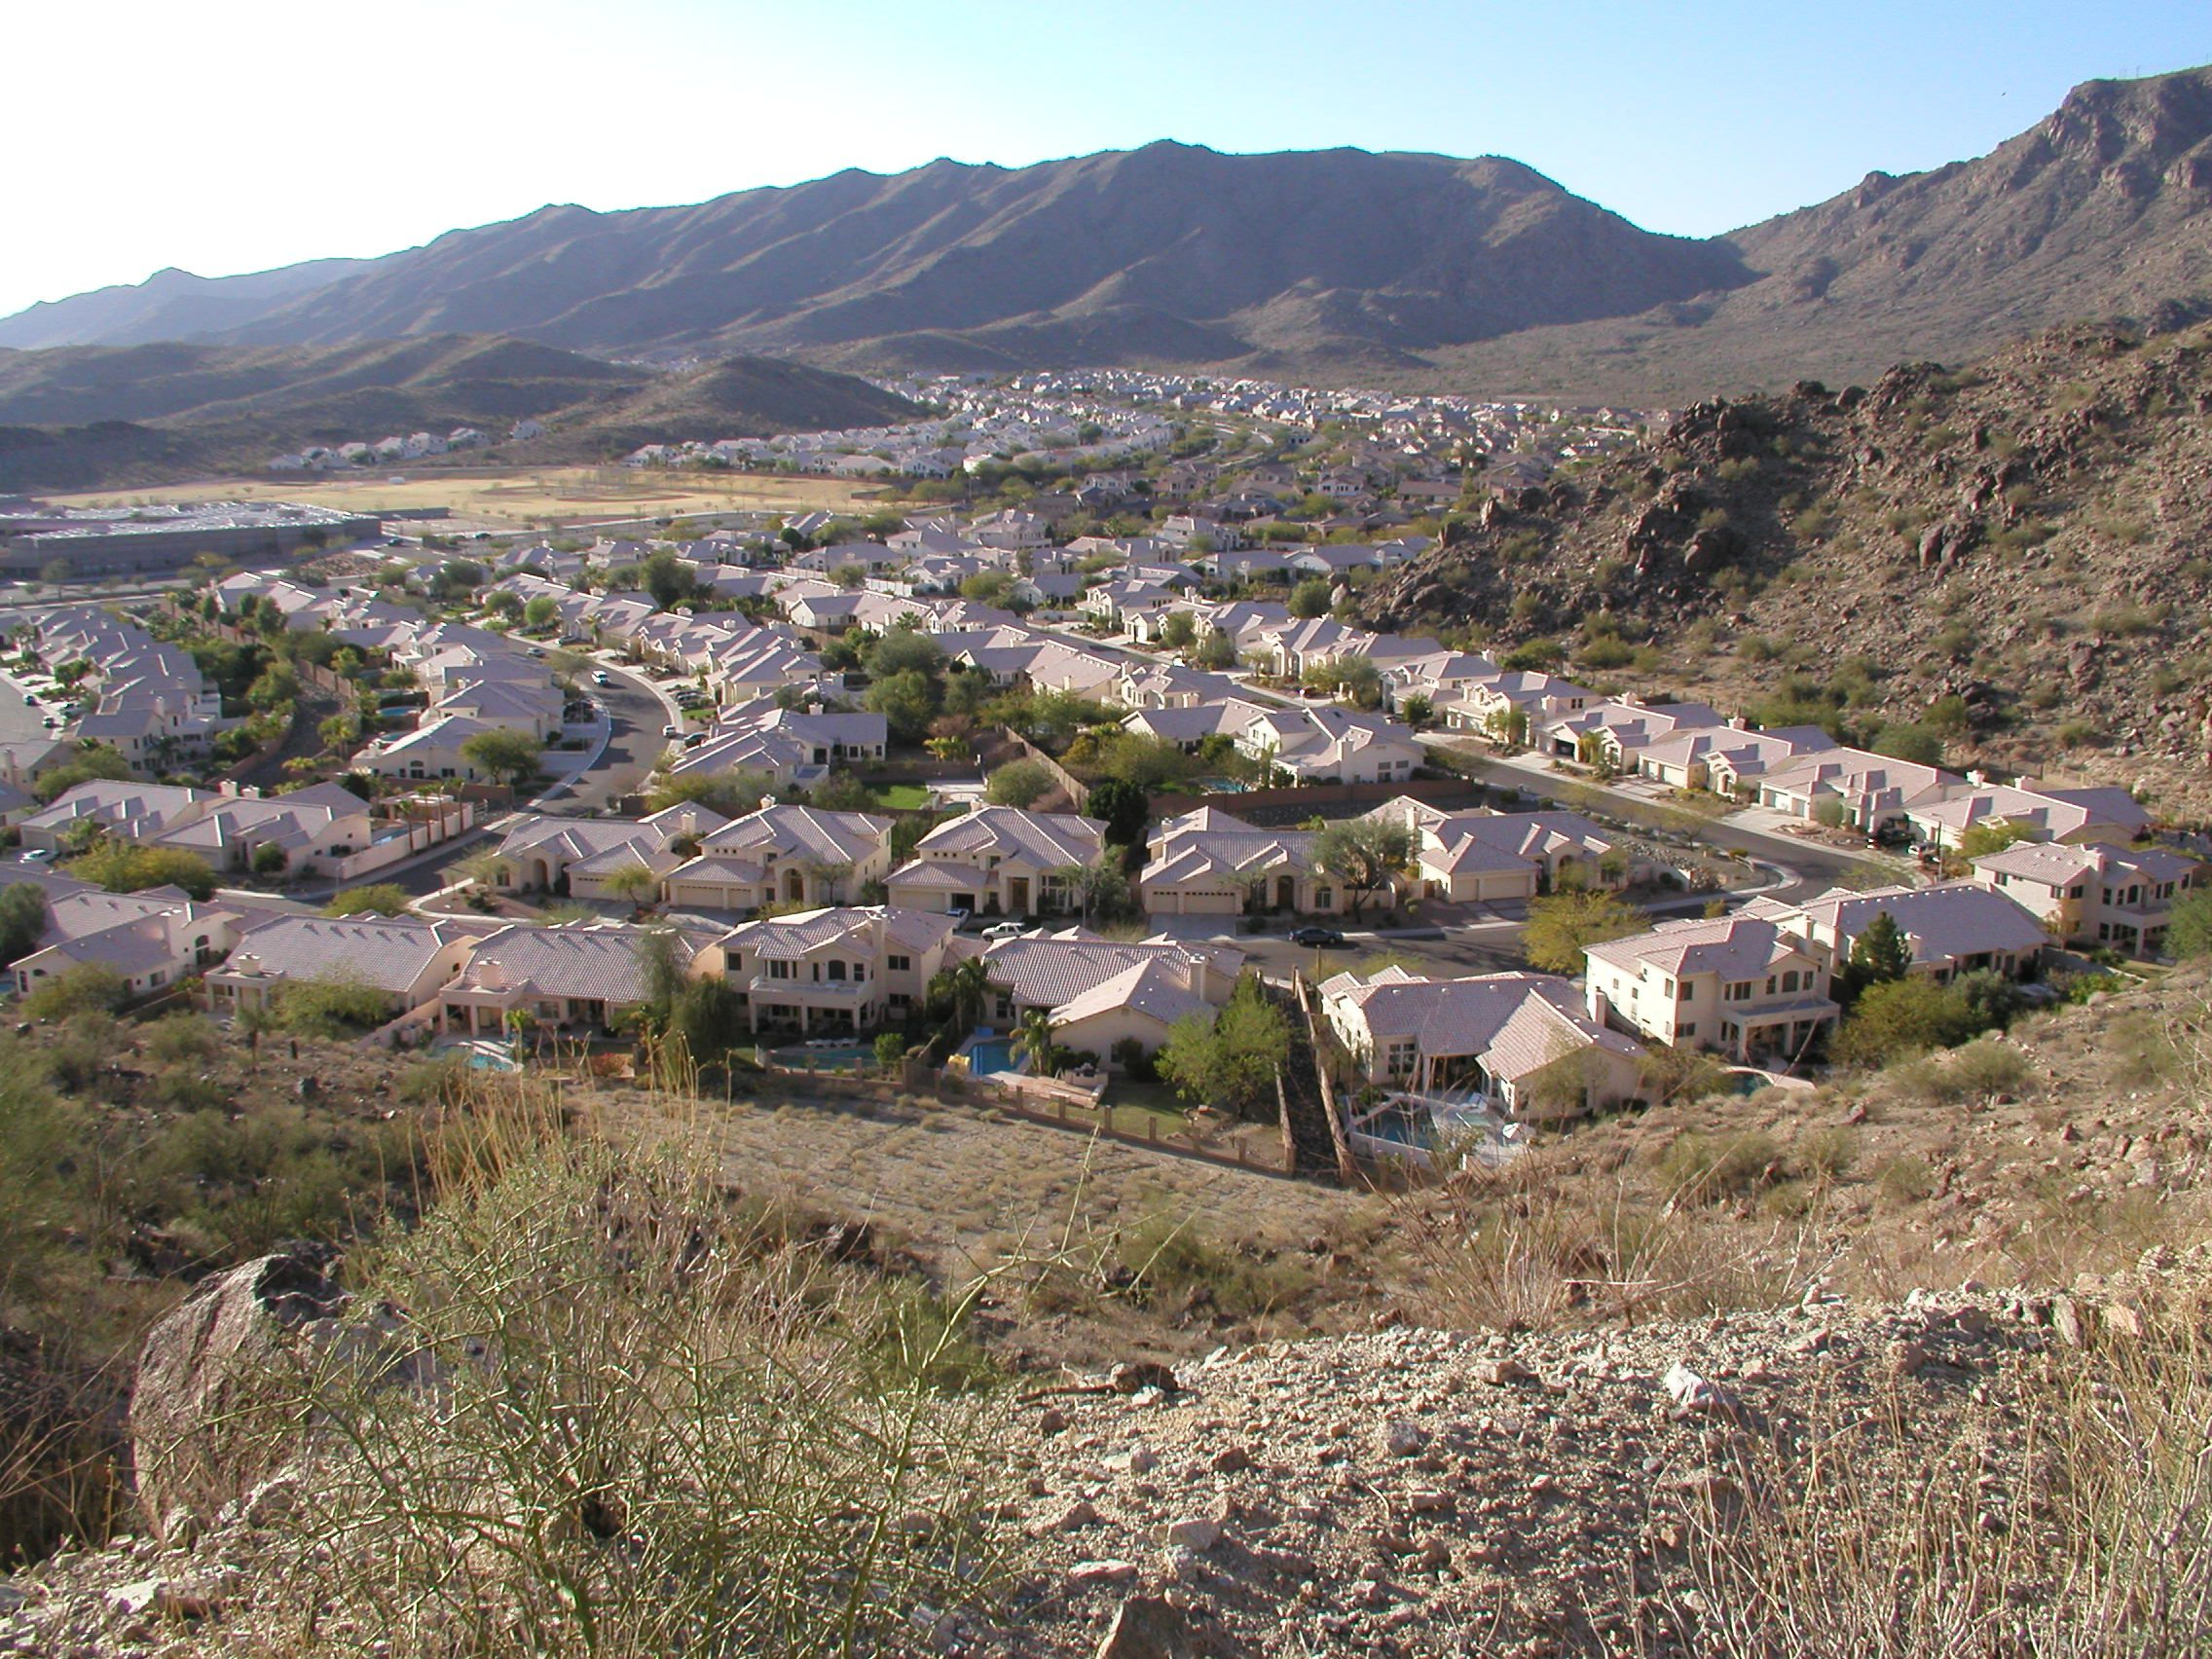 A typical Ahwatukee neighborhood as seen from South Mountain Park